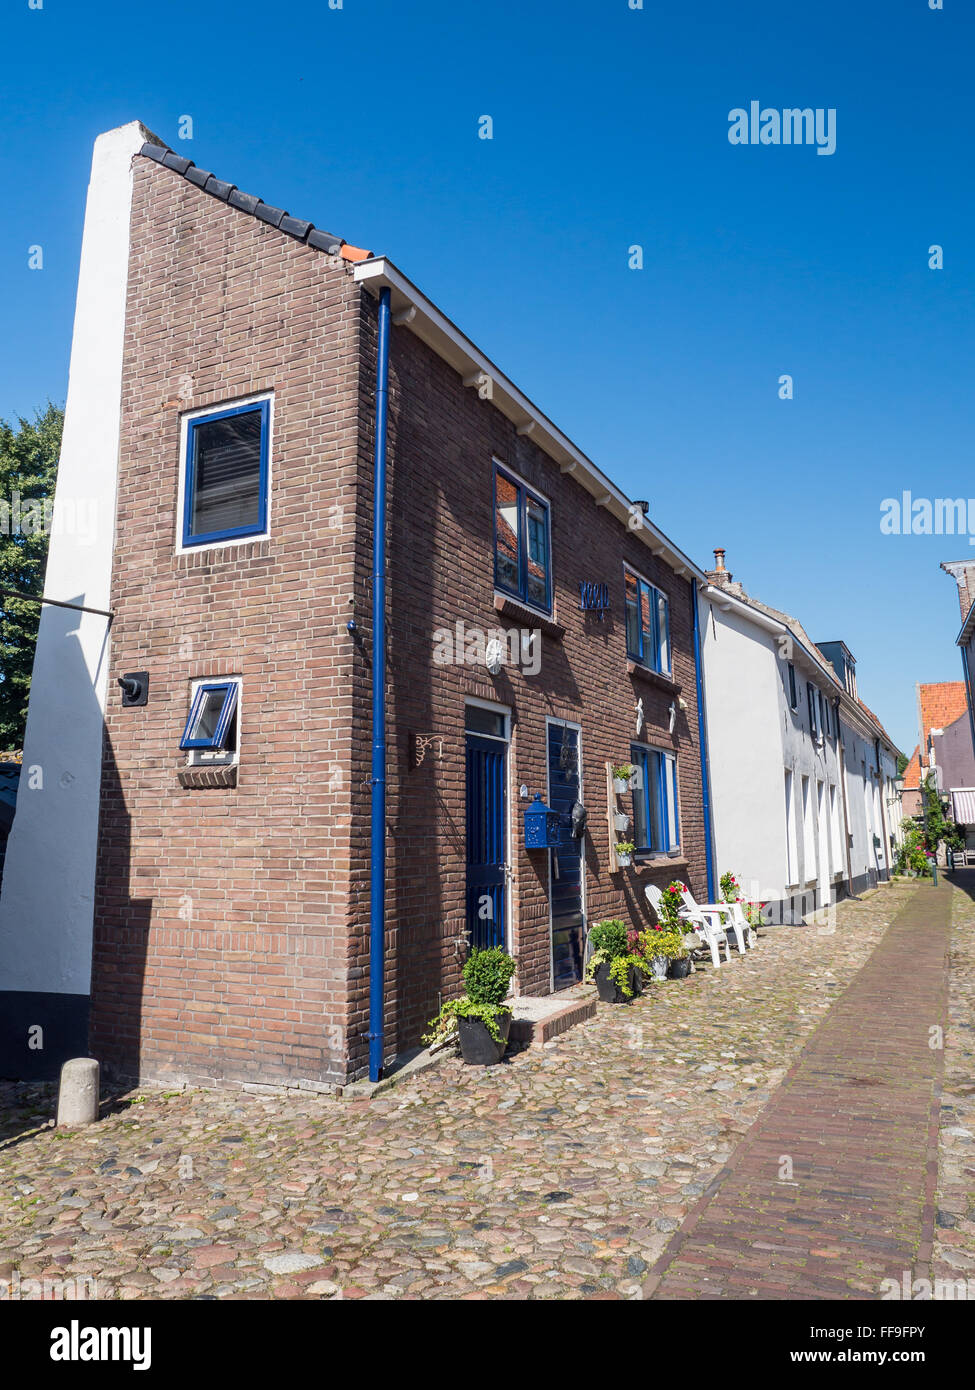 Historic building in the town of Elburg - Stock Image